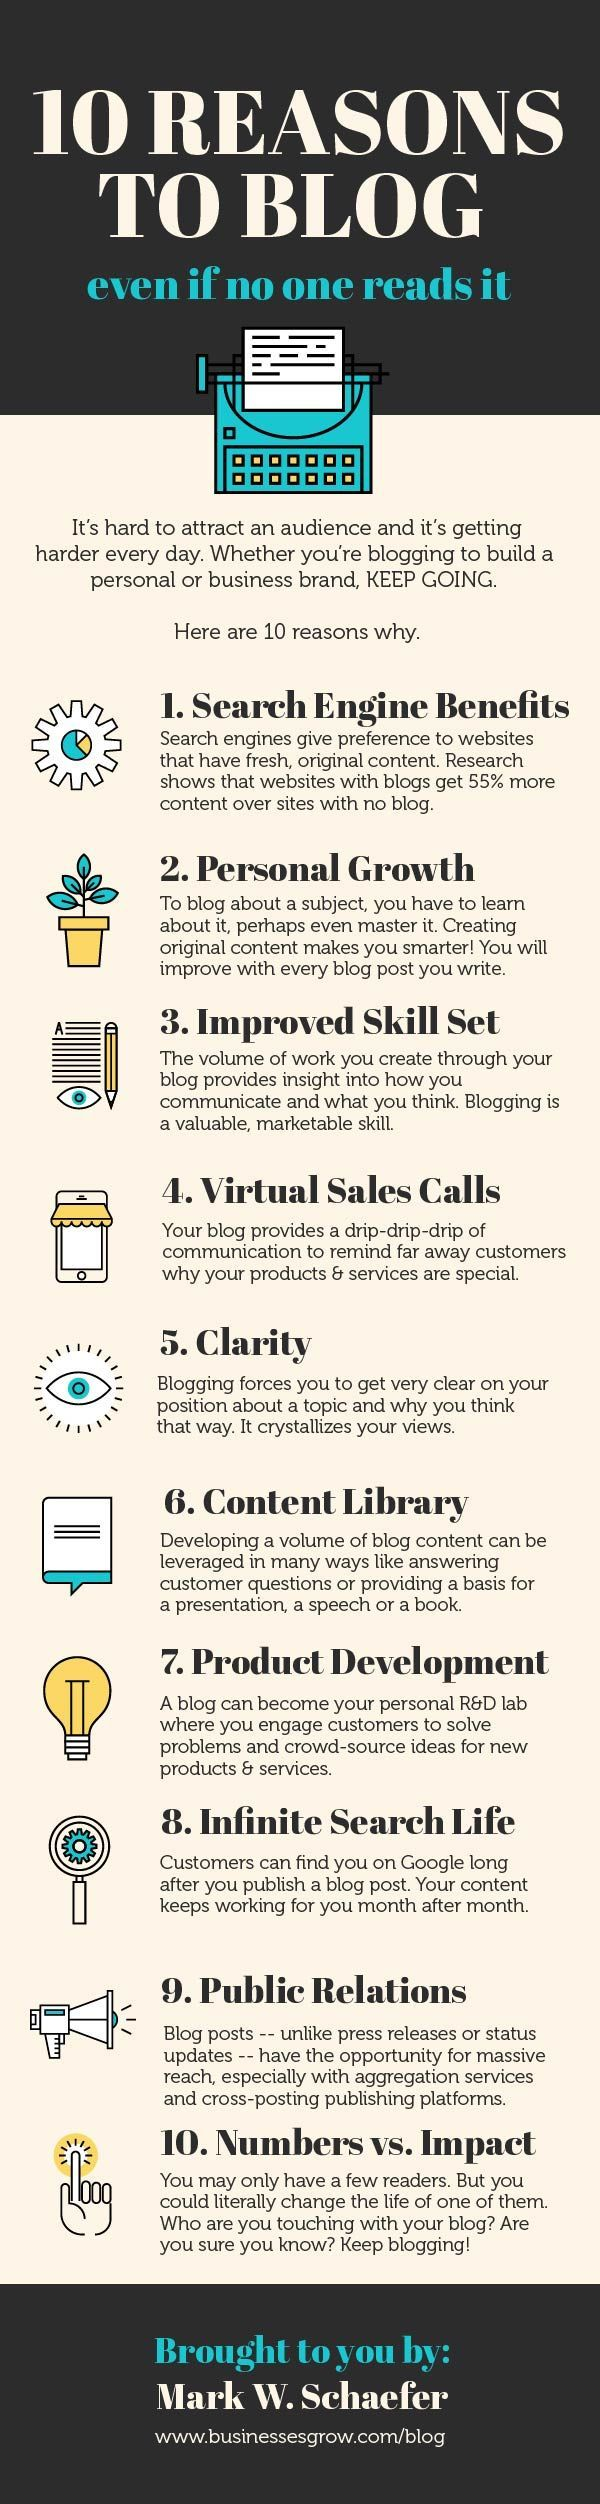 Infographic describing the top ten reasons why you should blog